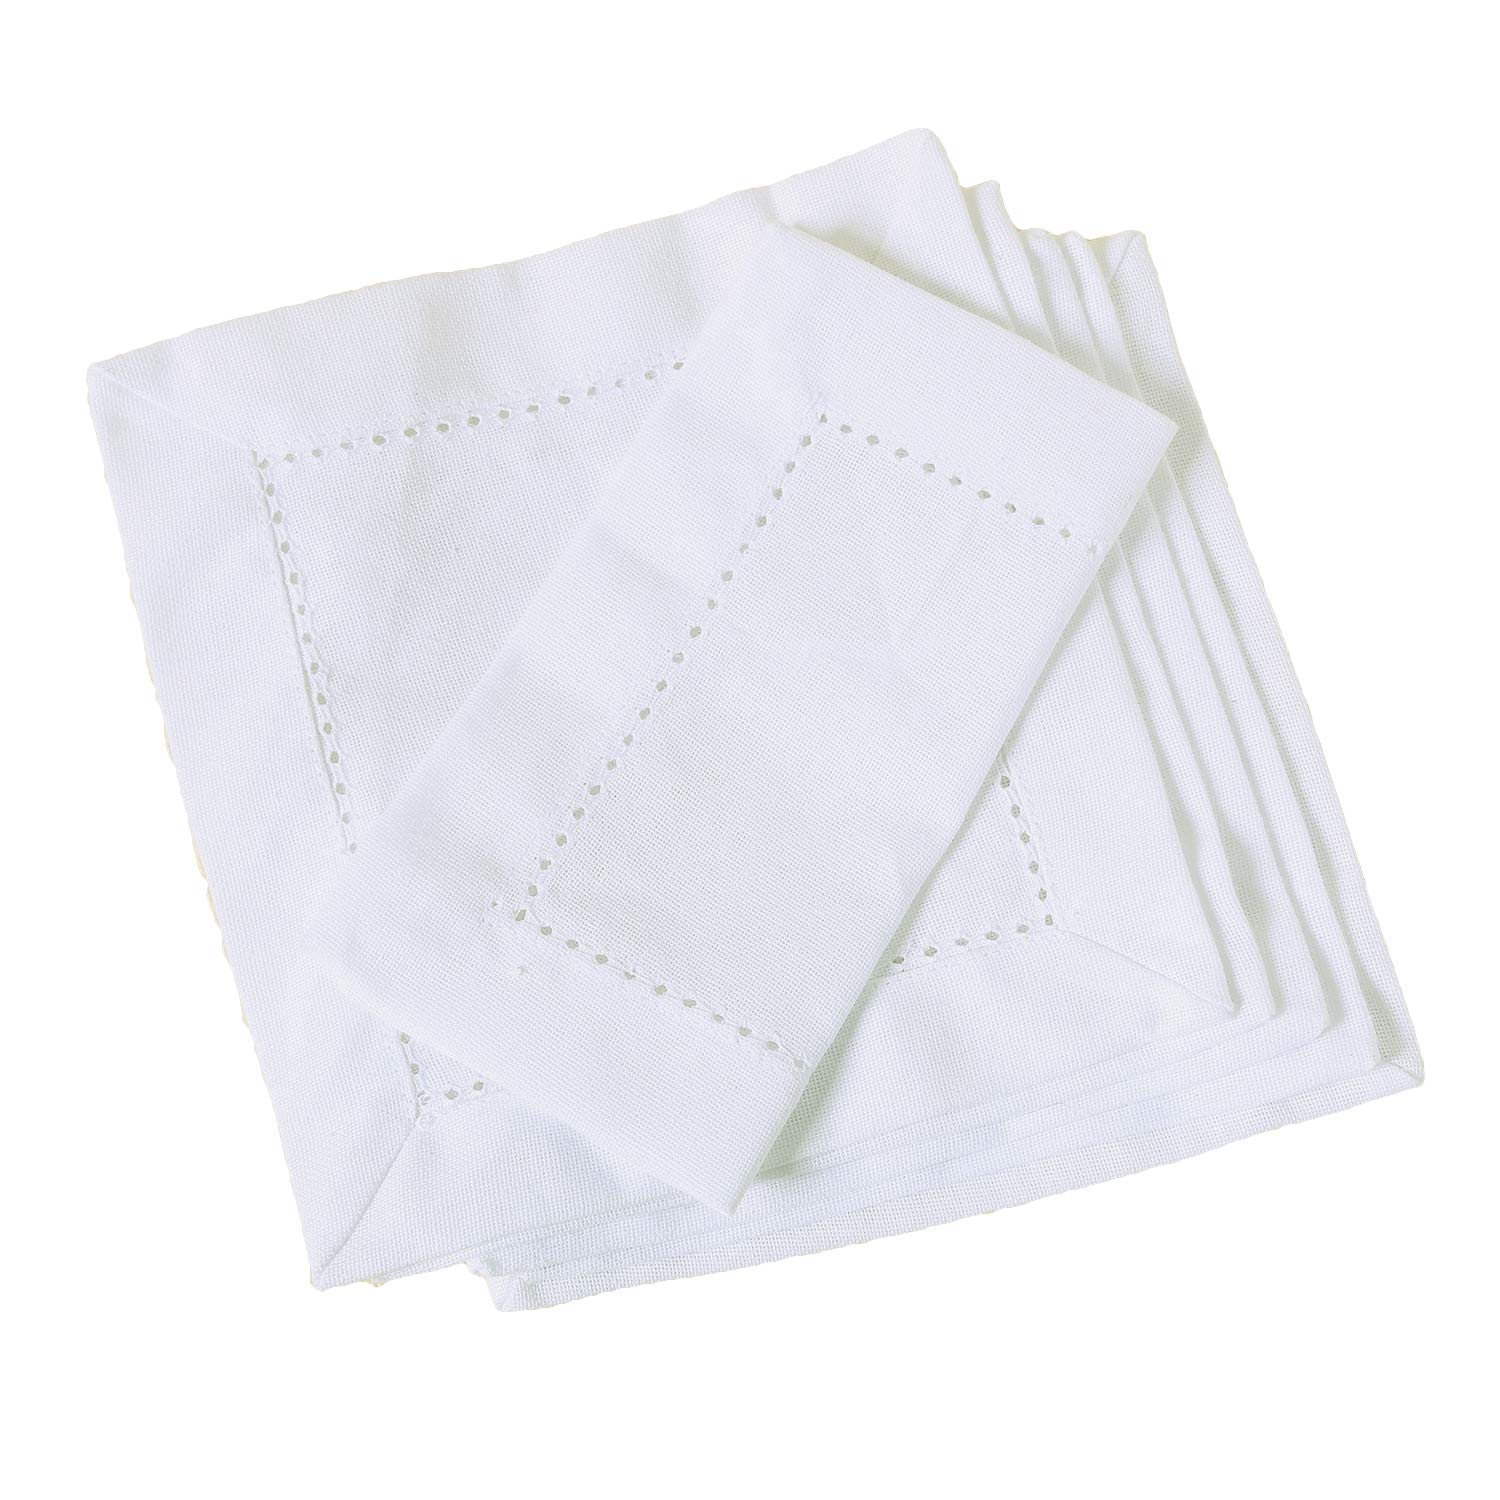 100% CERTIFIED PREMIUM ORGANIC WHITE COTTON NAPKINS, 6 x 6 inch Set of 6 White, Cotton Cocktail Napkins Cloth for Dinner, Events, Weddings, Tailored with Hemstitched Mitered corners and a generous hem